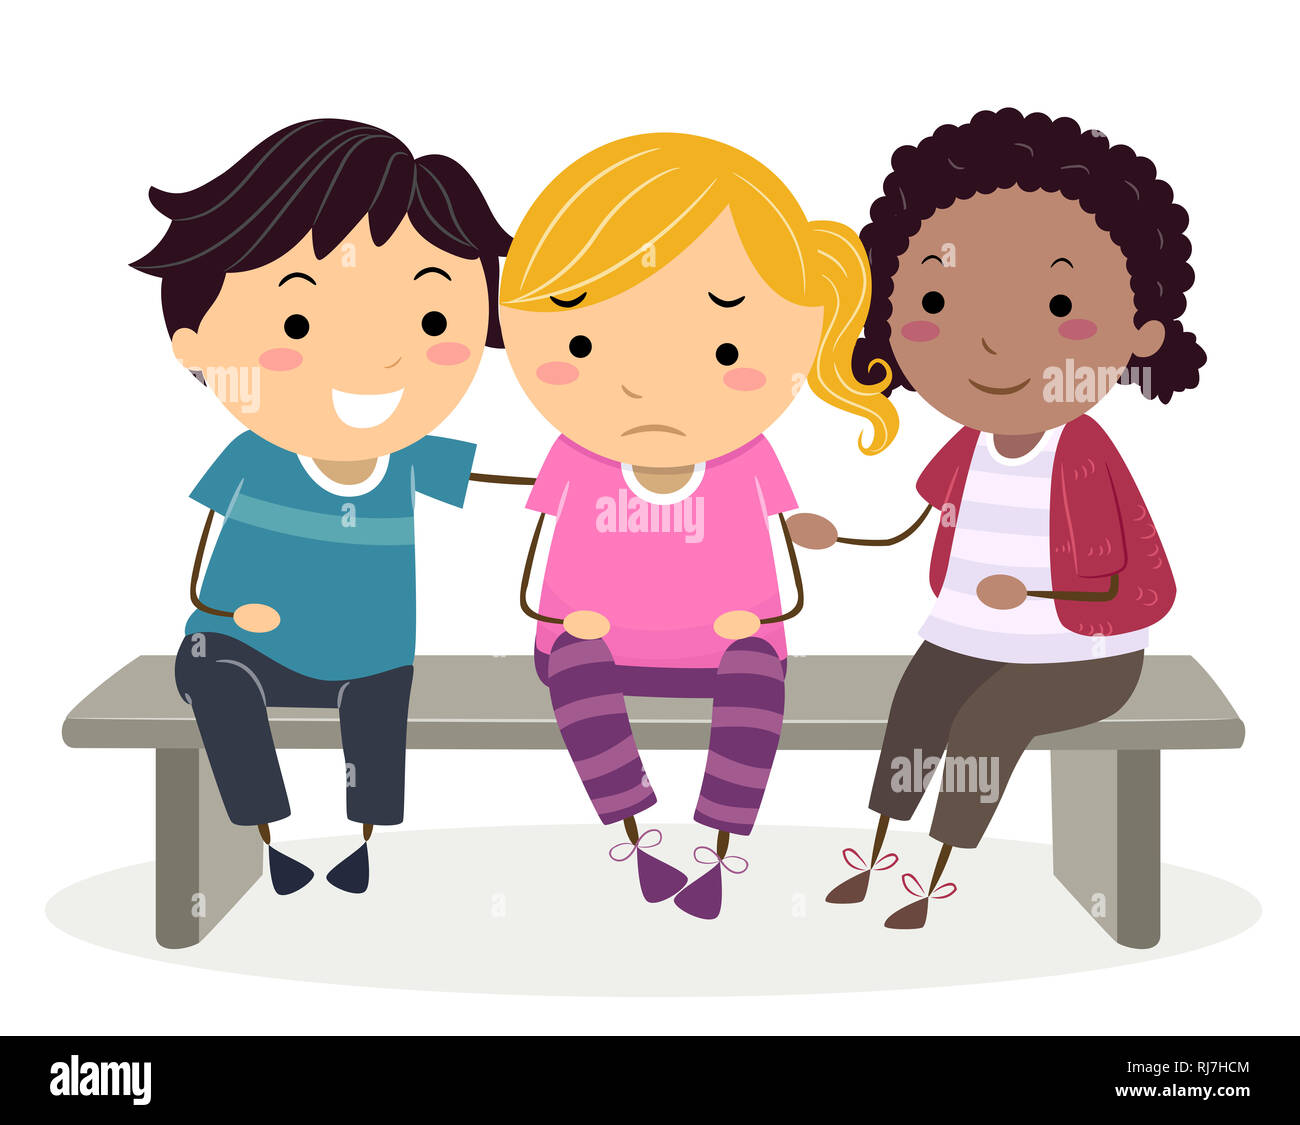 Illustration of a Stickman Kid Girl Crying with Her Friends Cheering Her Up - Stock Image